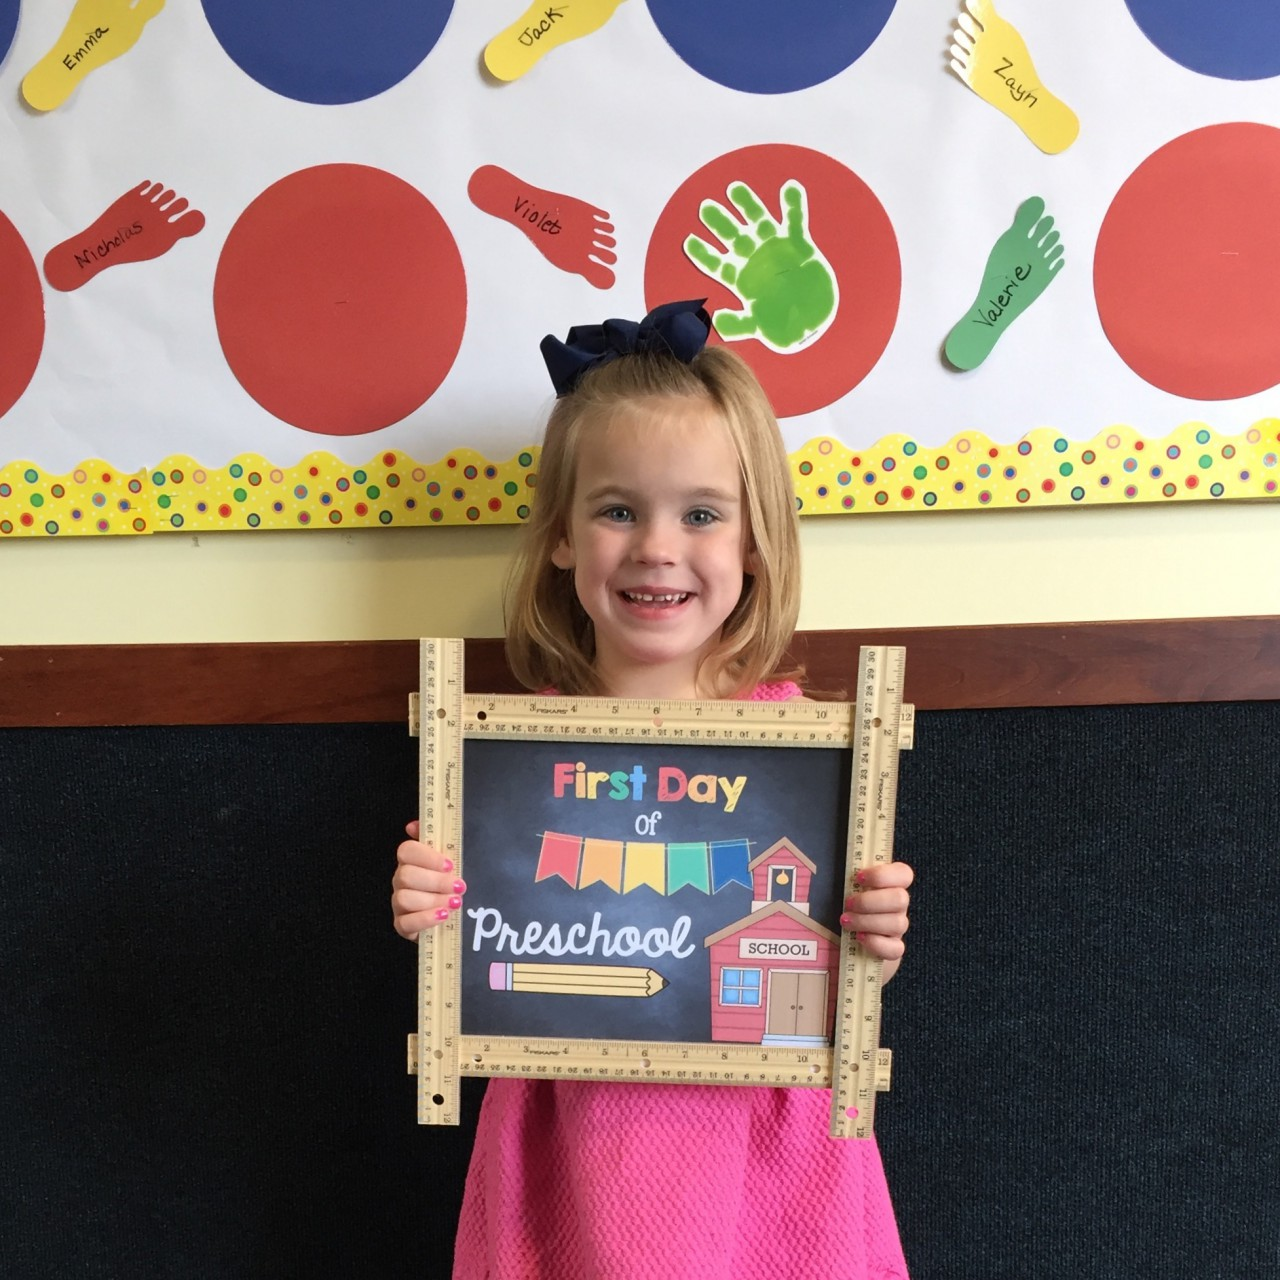 Blog_Photos-McDougle-GTP_Preschool-Aug2018-_20180813-143538_1